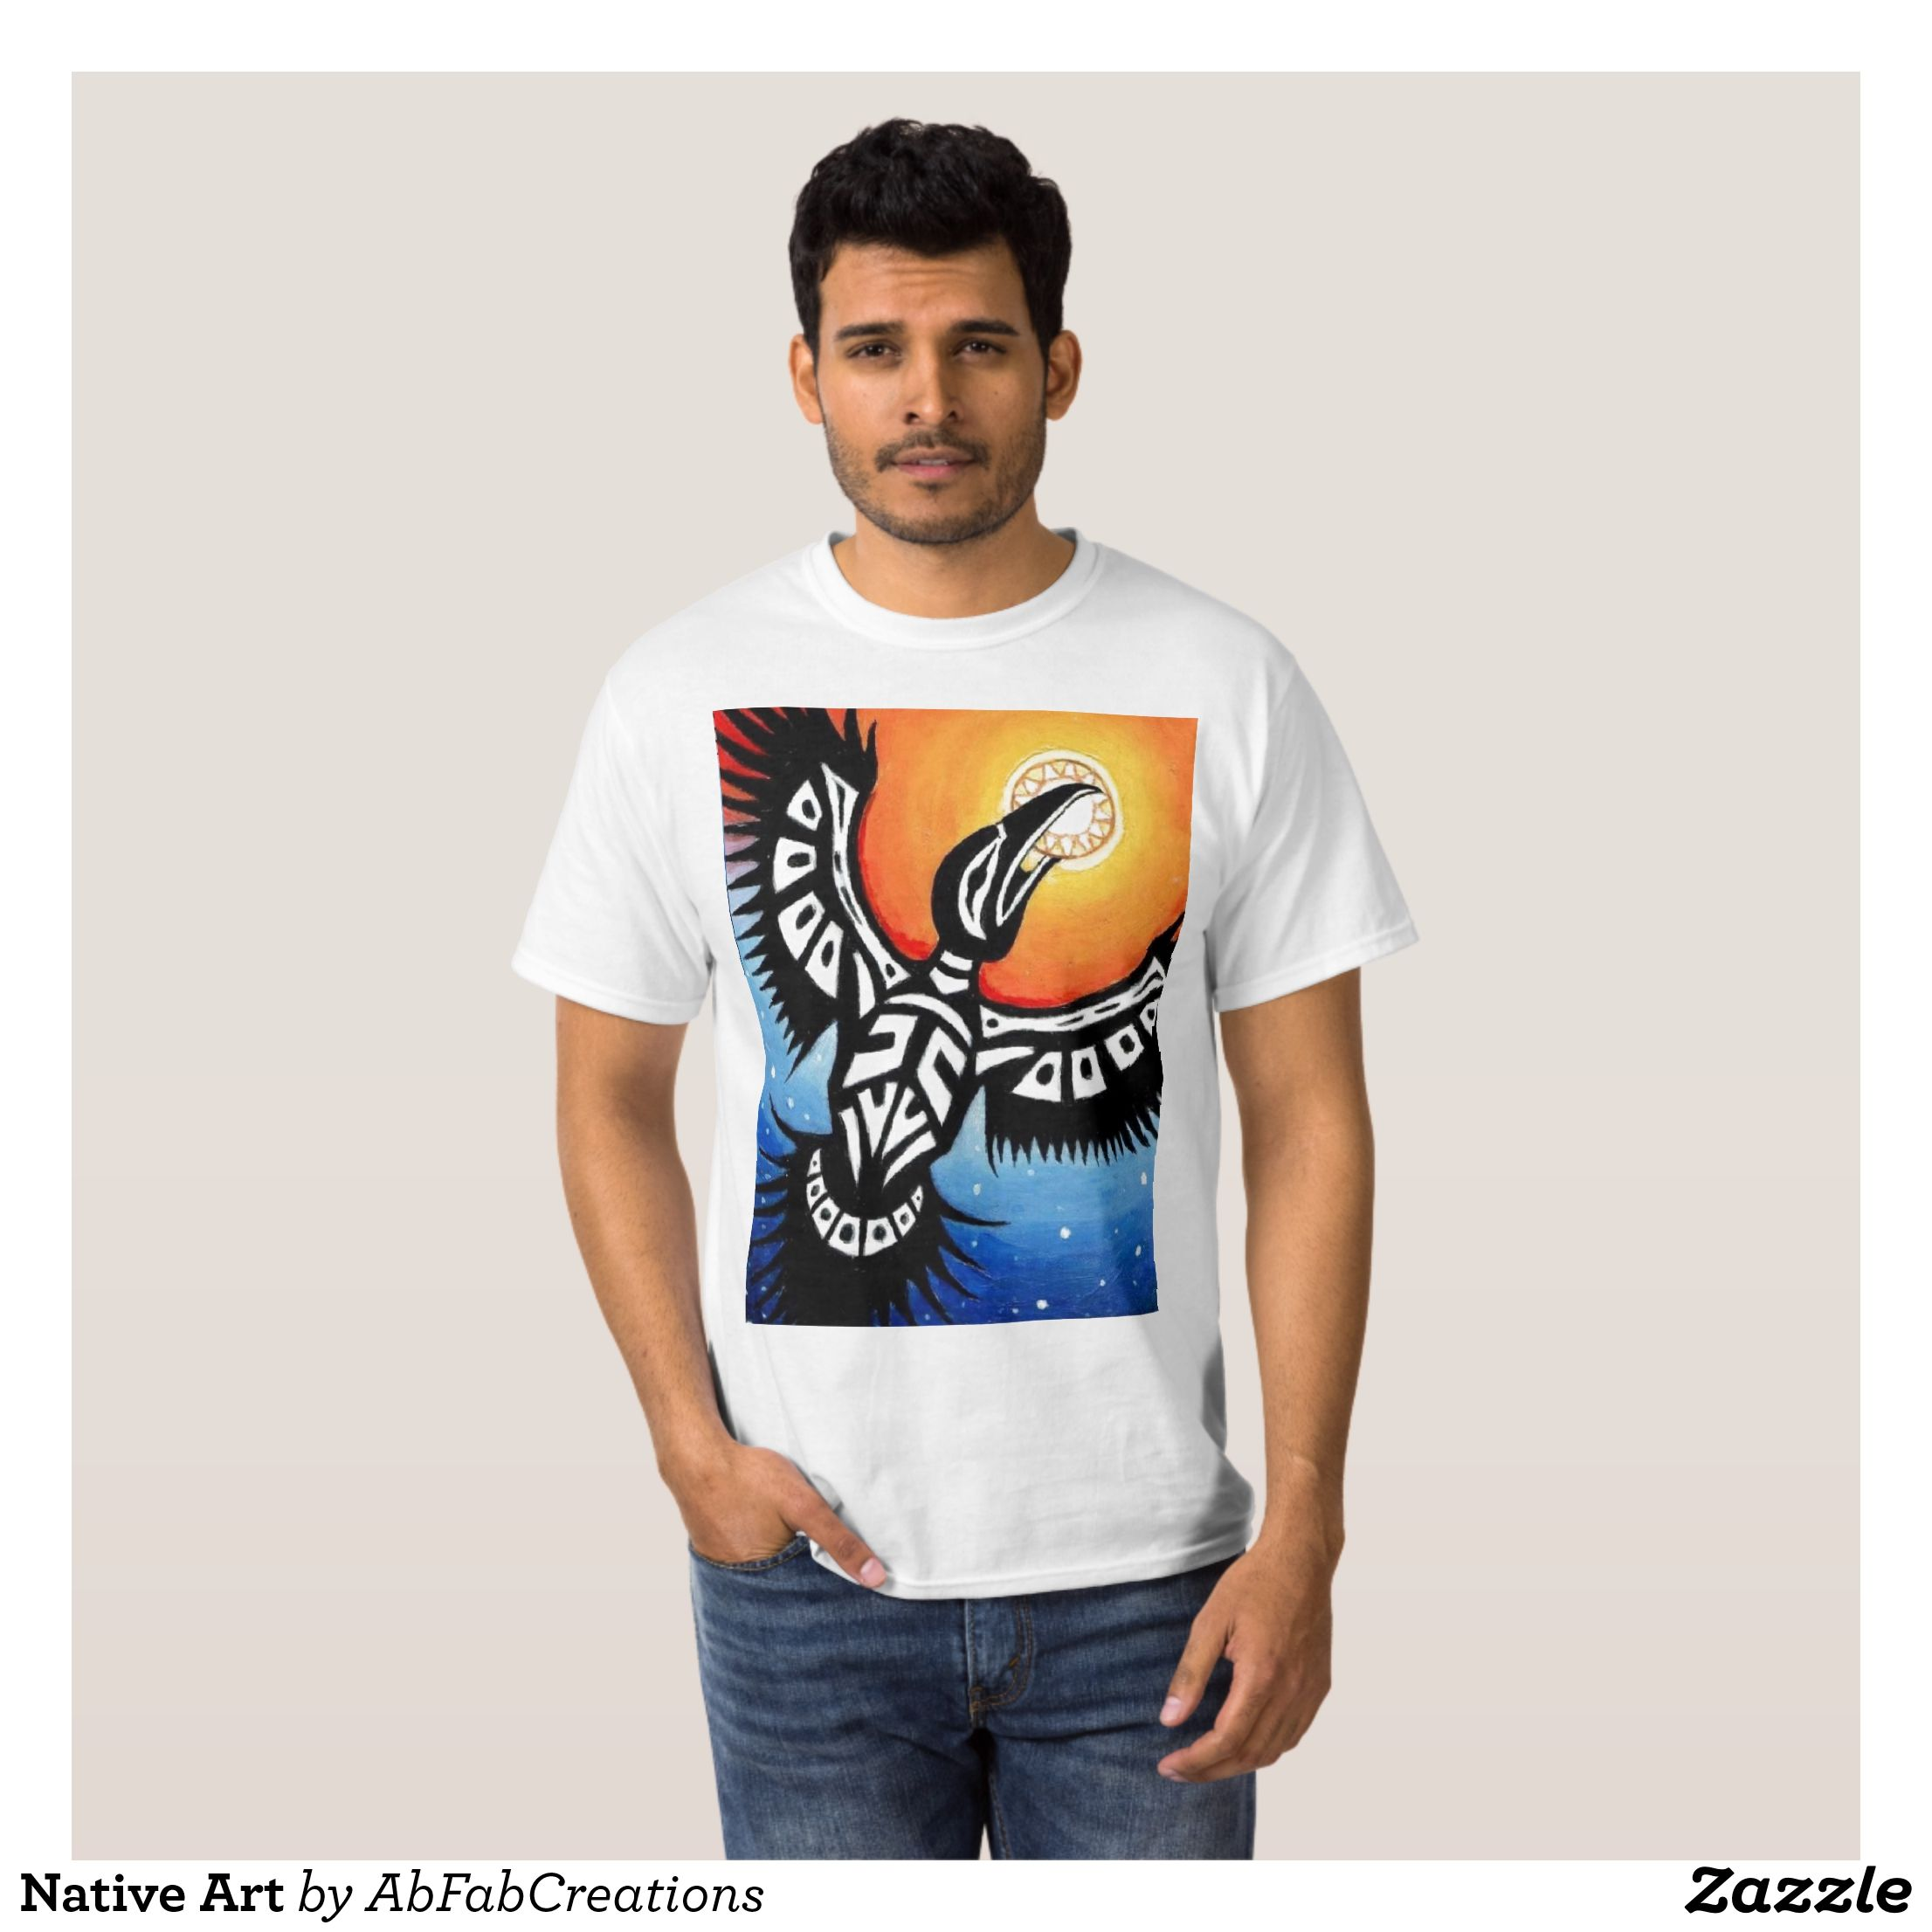 Native Art T Shirt Classic Relaxed T Shirts By Talented Fashion Graphic Designers Shirts Tshirts Mensfash Shirt Designs Fashion Graphic Tshirt Designs